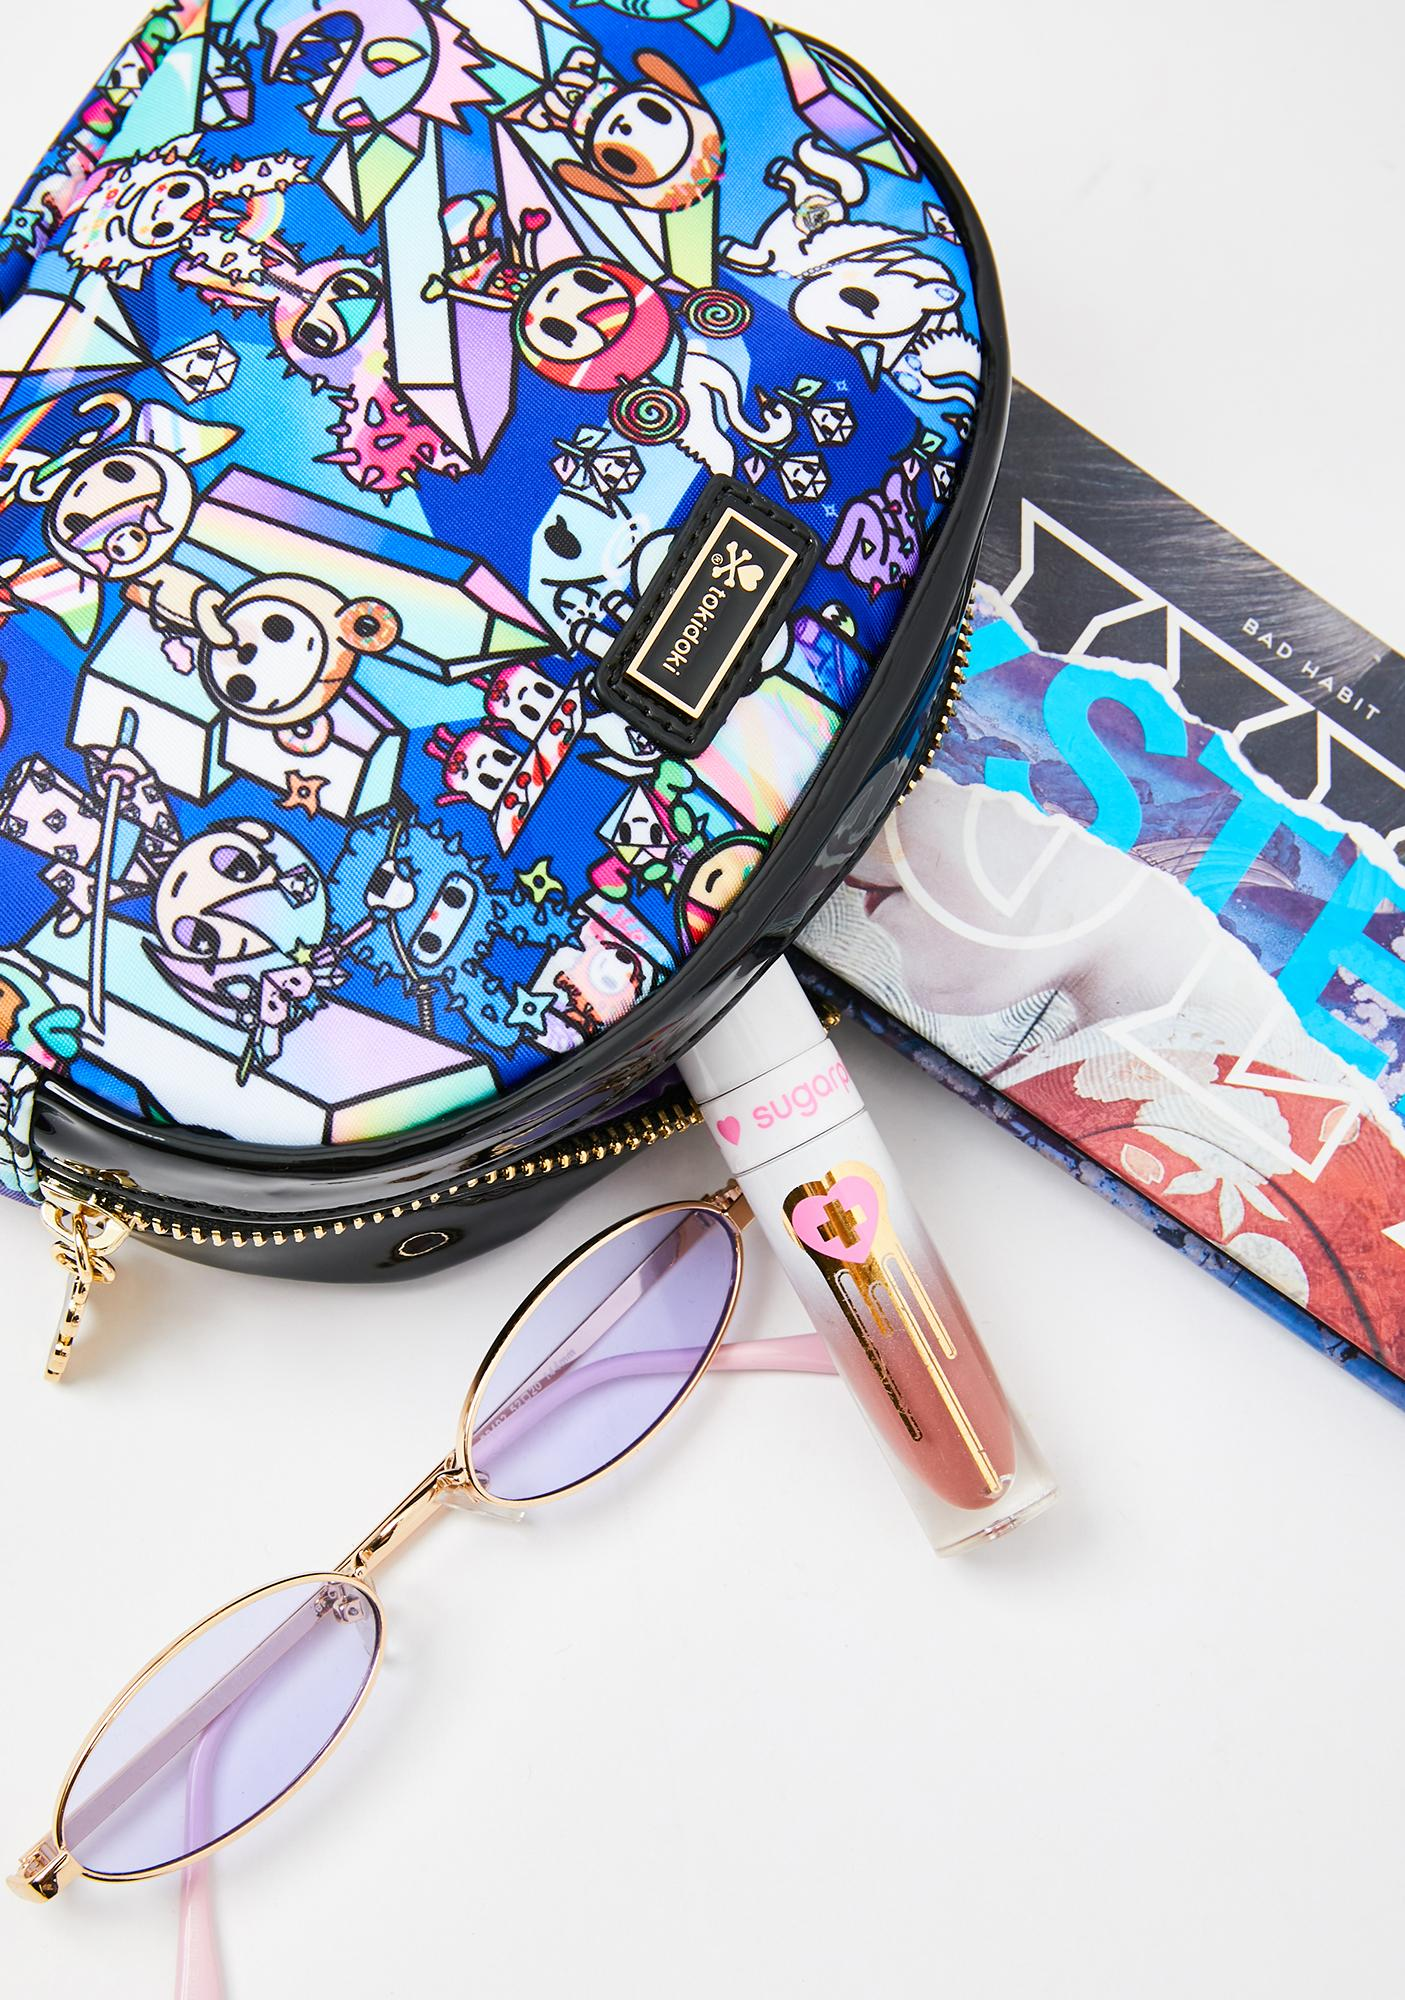 Tokidoki Crystal Kingdom Cosmetic Bag